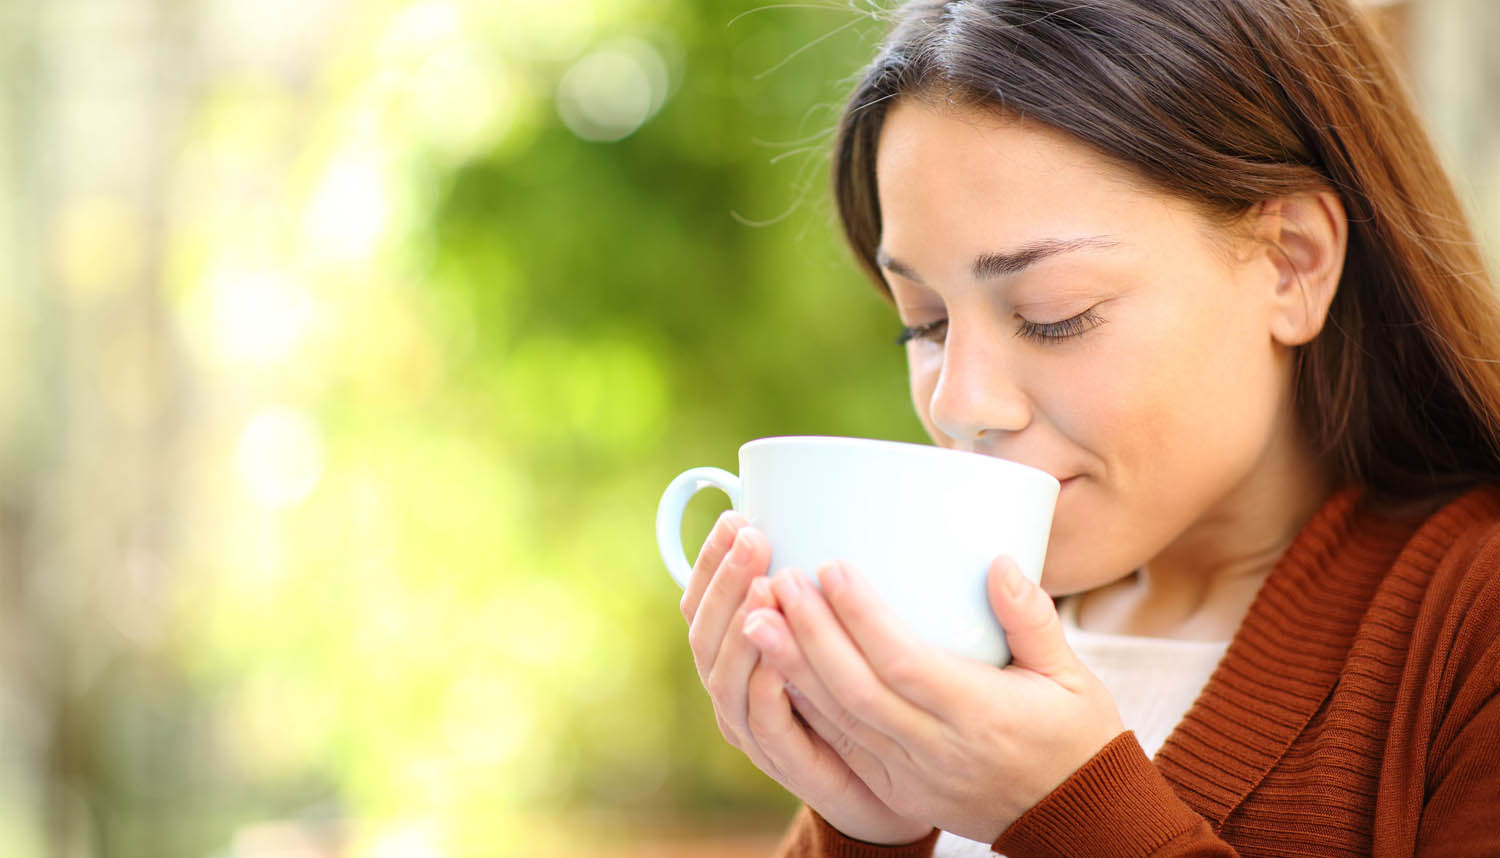 A Woman Sipping A Healthy Hot Drink From A White Cup